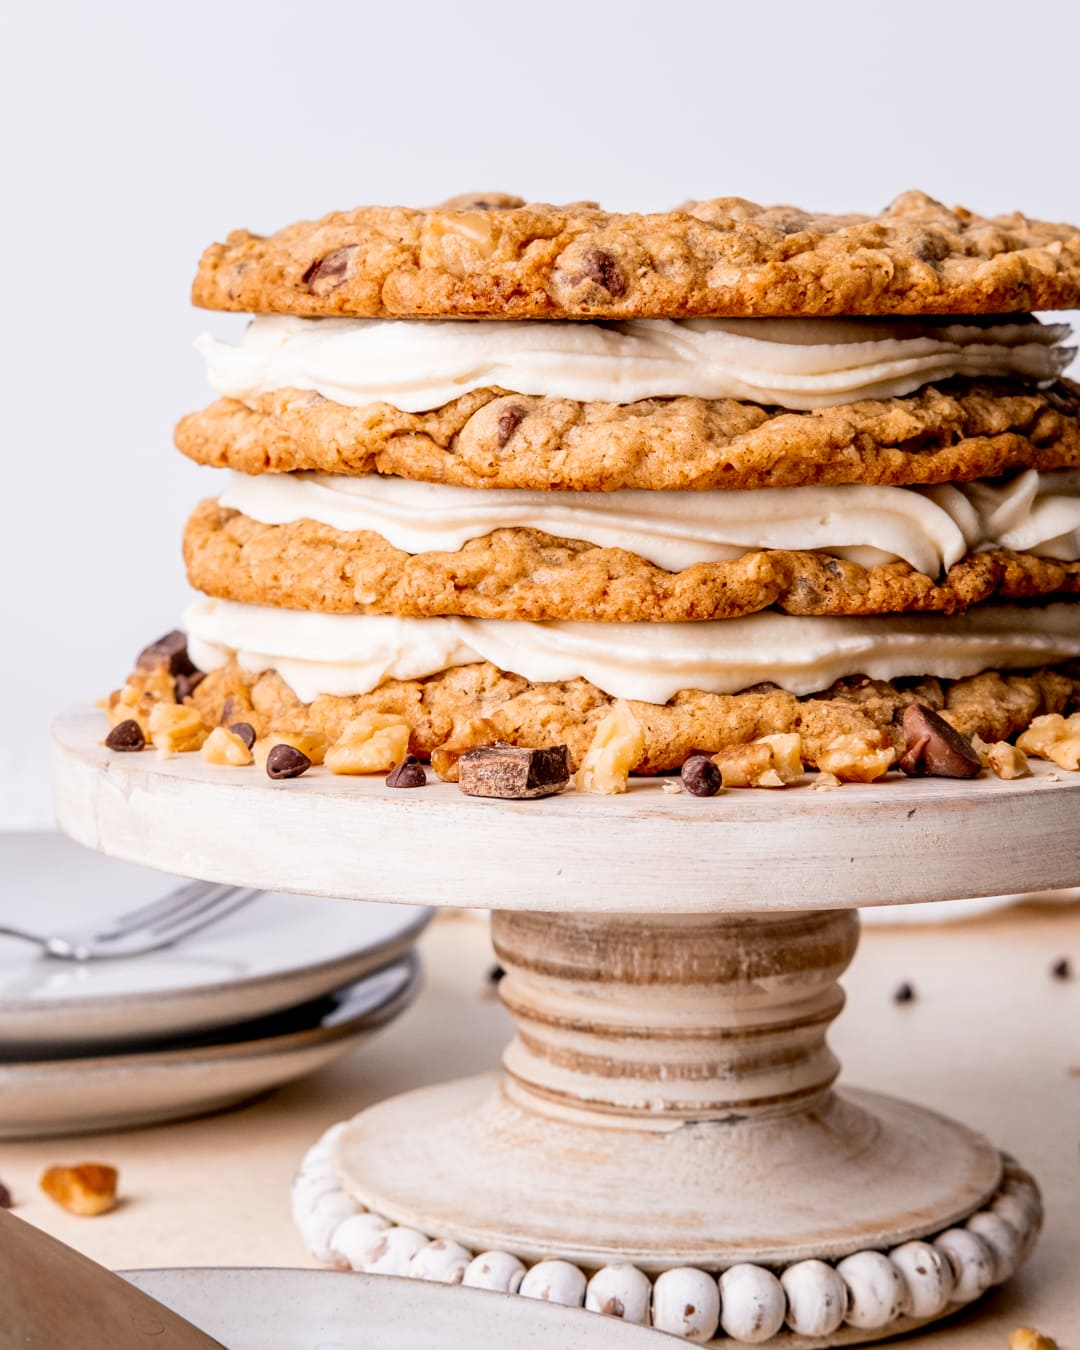 a cowboy cookie cake on a cake stand with chocolate chips and walnuts around it